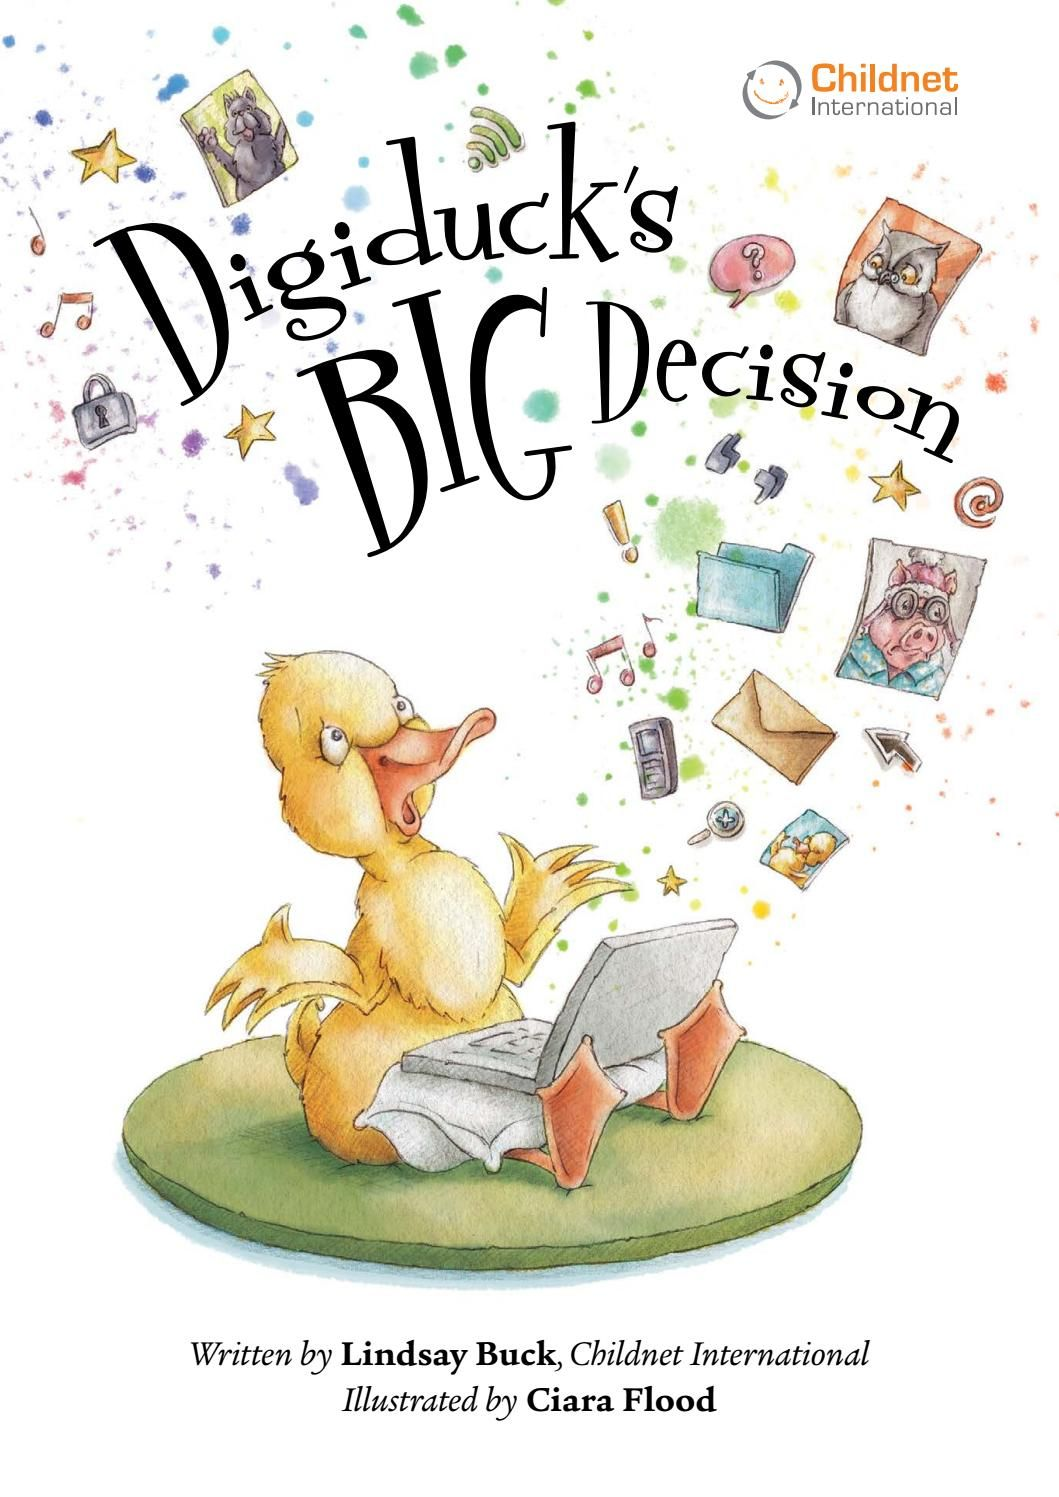 Digiduck S Big Decision In 2020 Internet Safety For Kids Online Safety Helping Kids